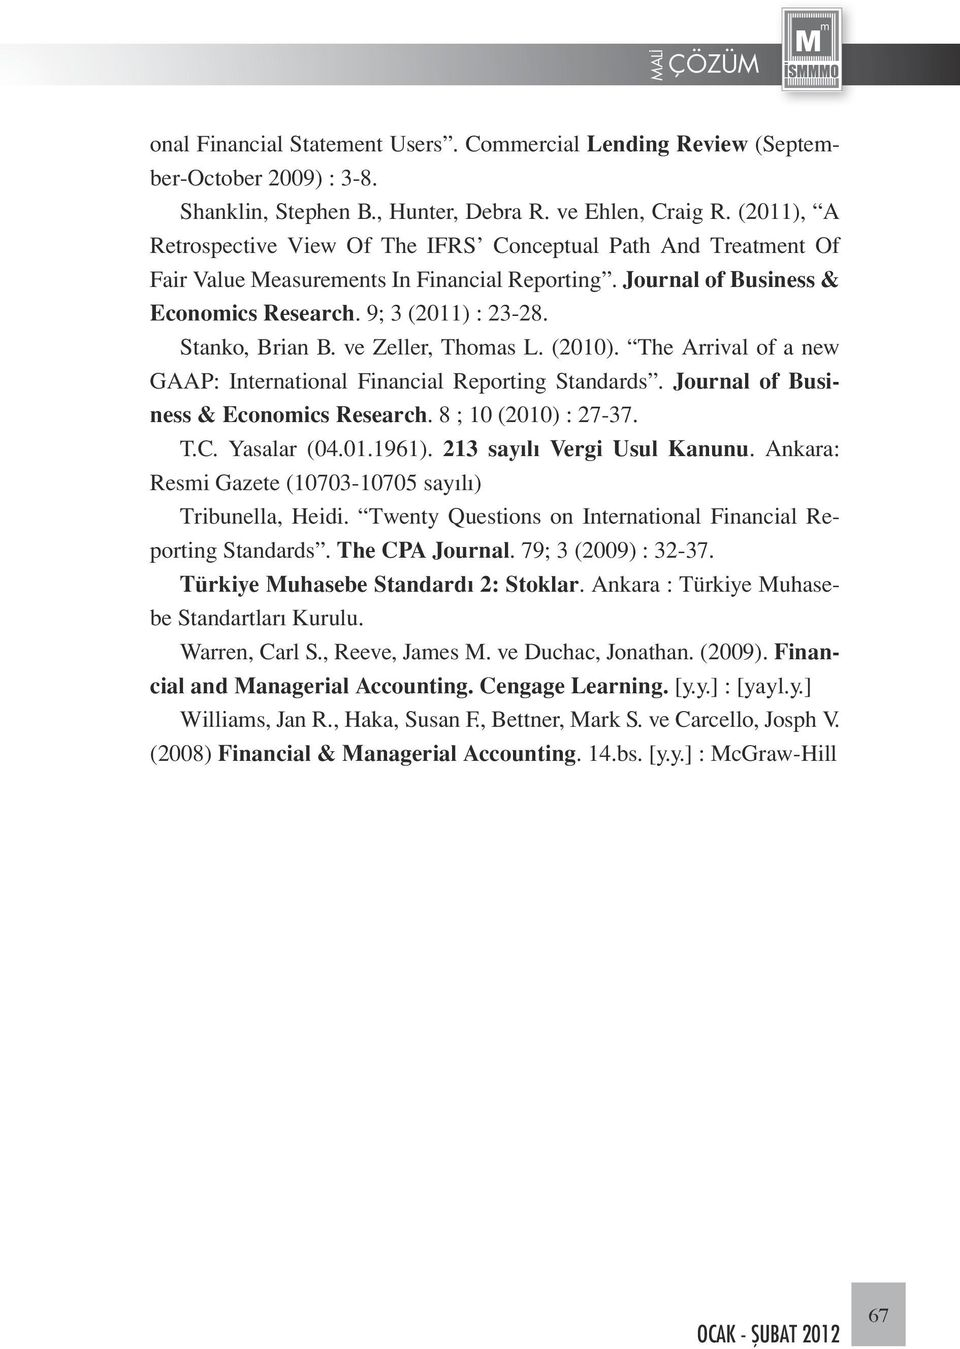 Stanko, Brian B. ve Zeller, Thomas L. (2010). The Arrival of a new GAAP: International Financial Reporting Standards. Journal of Business & Economics Research. 8 ; 10 (2010) : 27-37. T.C. Yasalar (04.